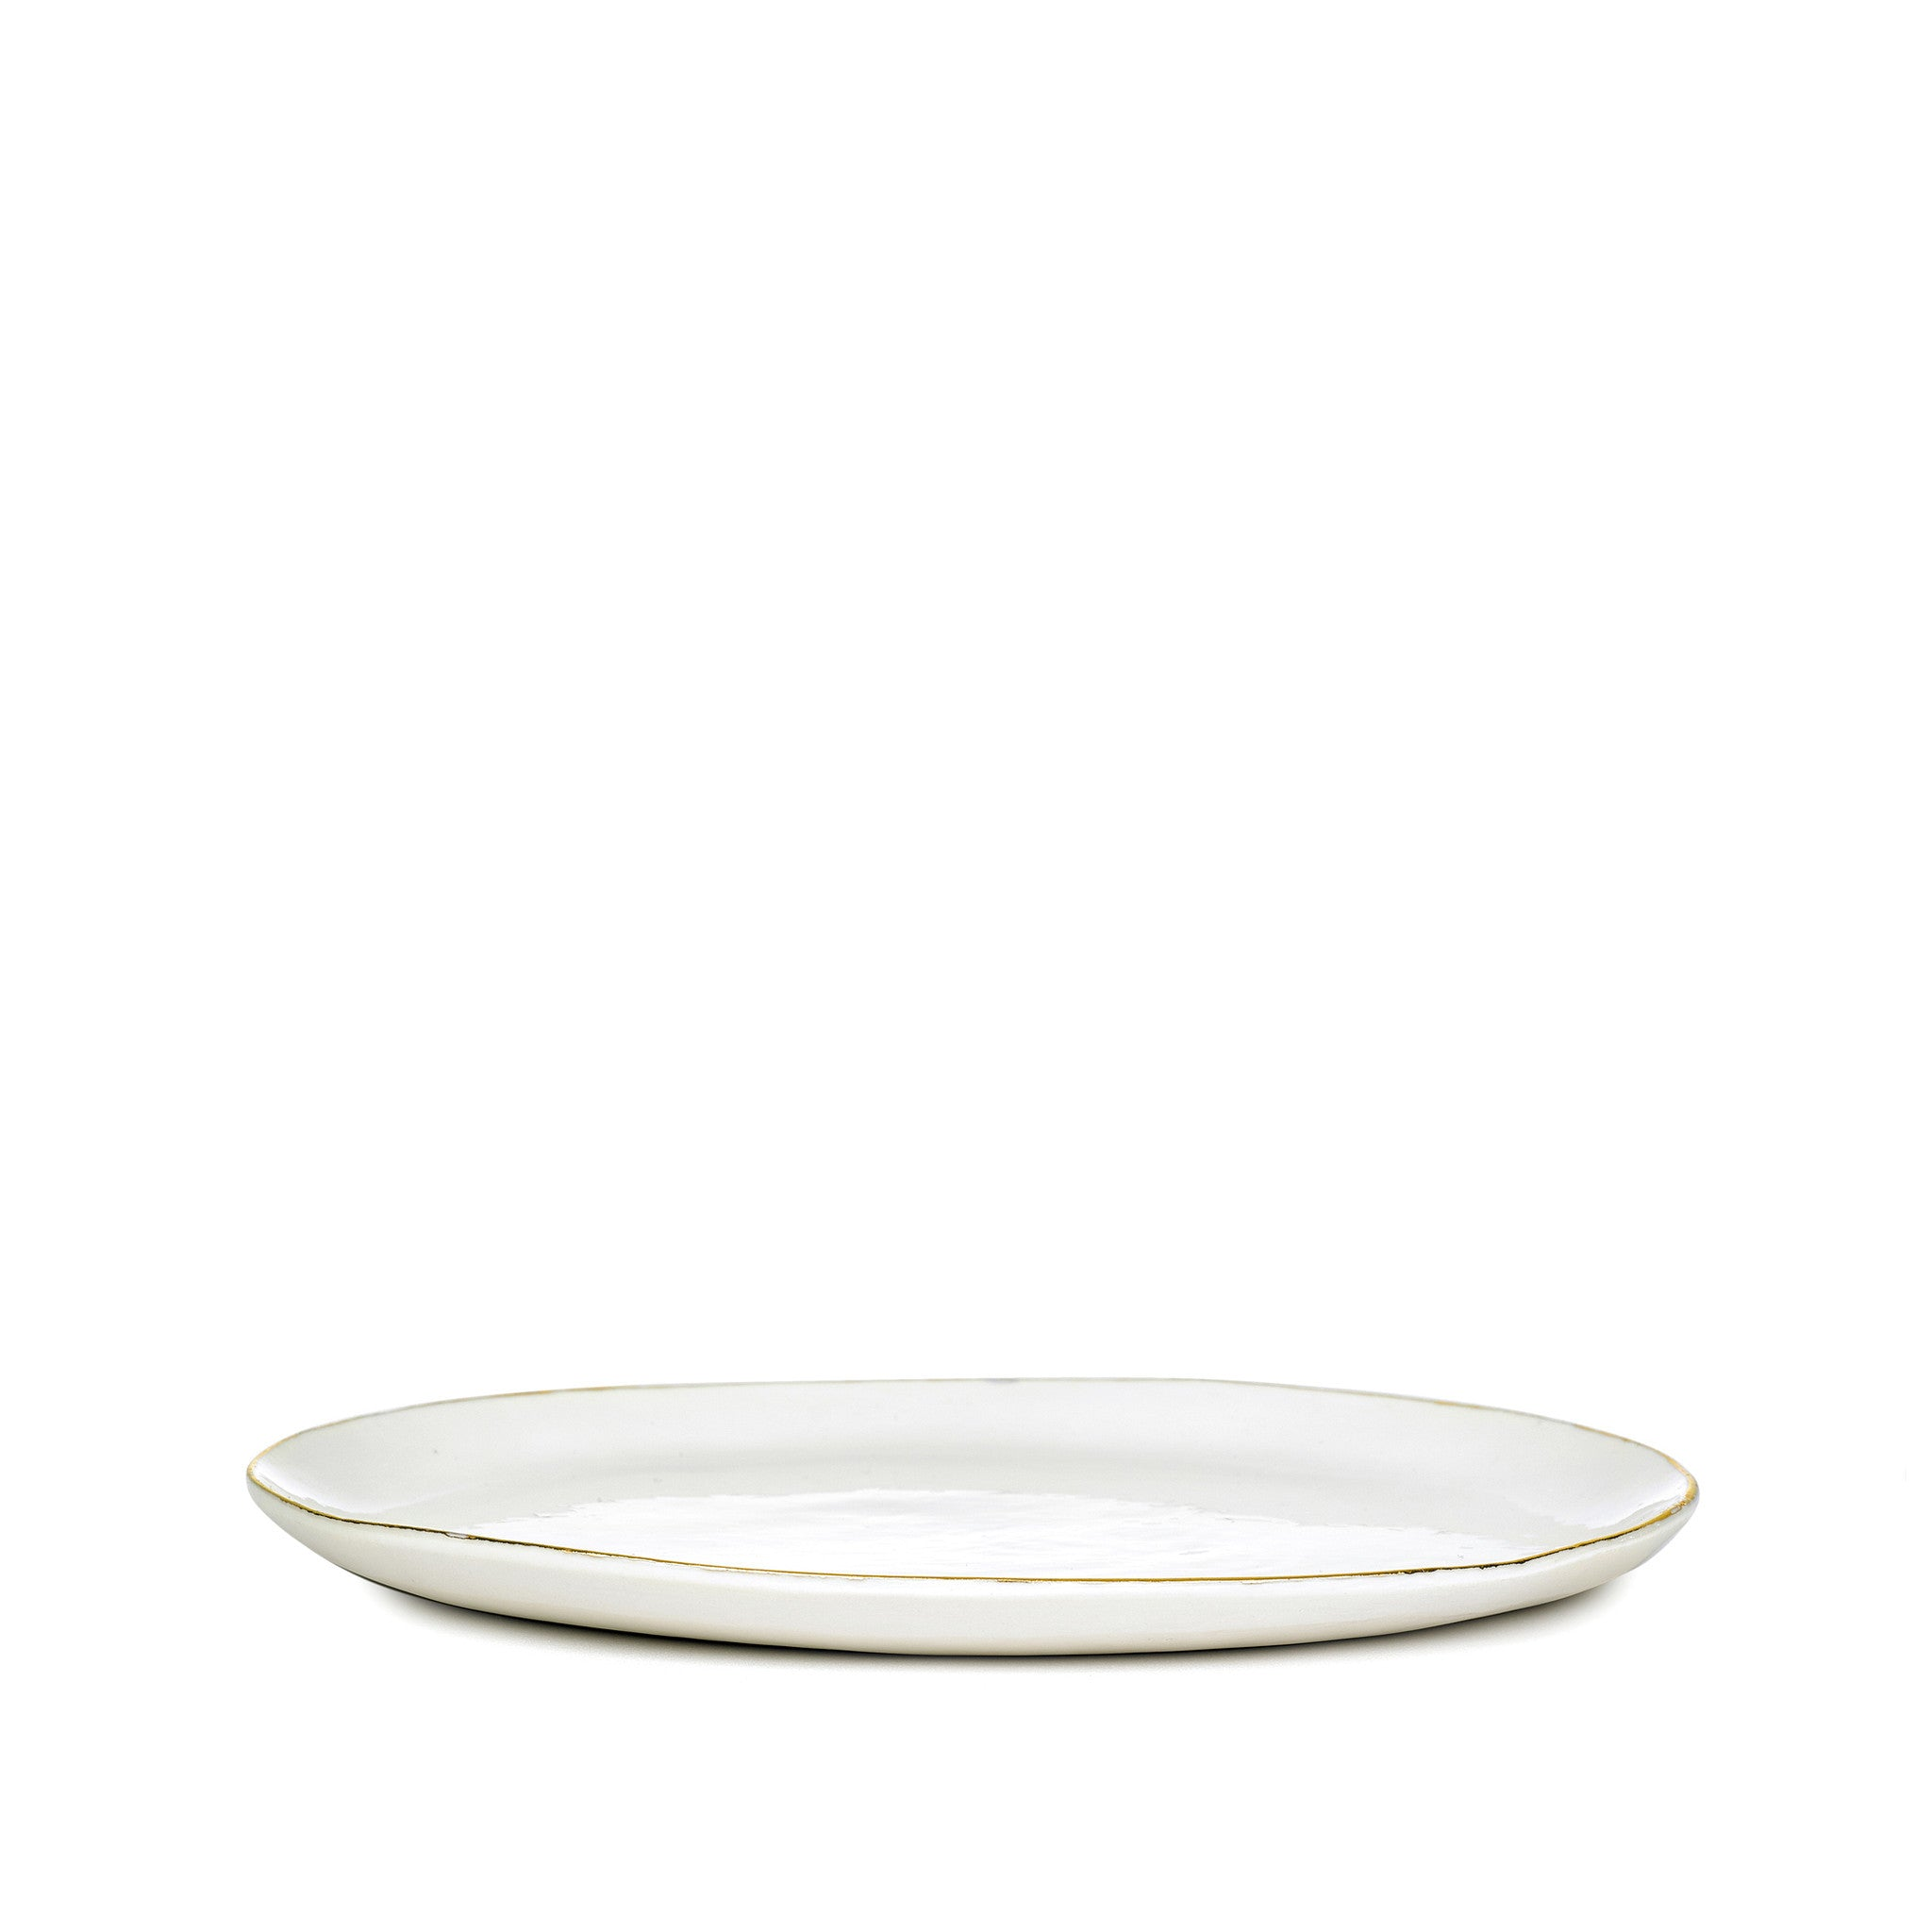 S&B Handmade 20cm Porcelain Side Plate with Gold Rim